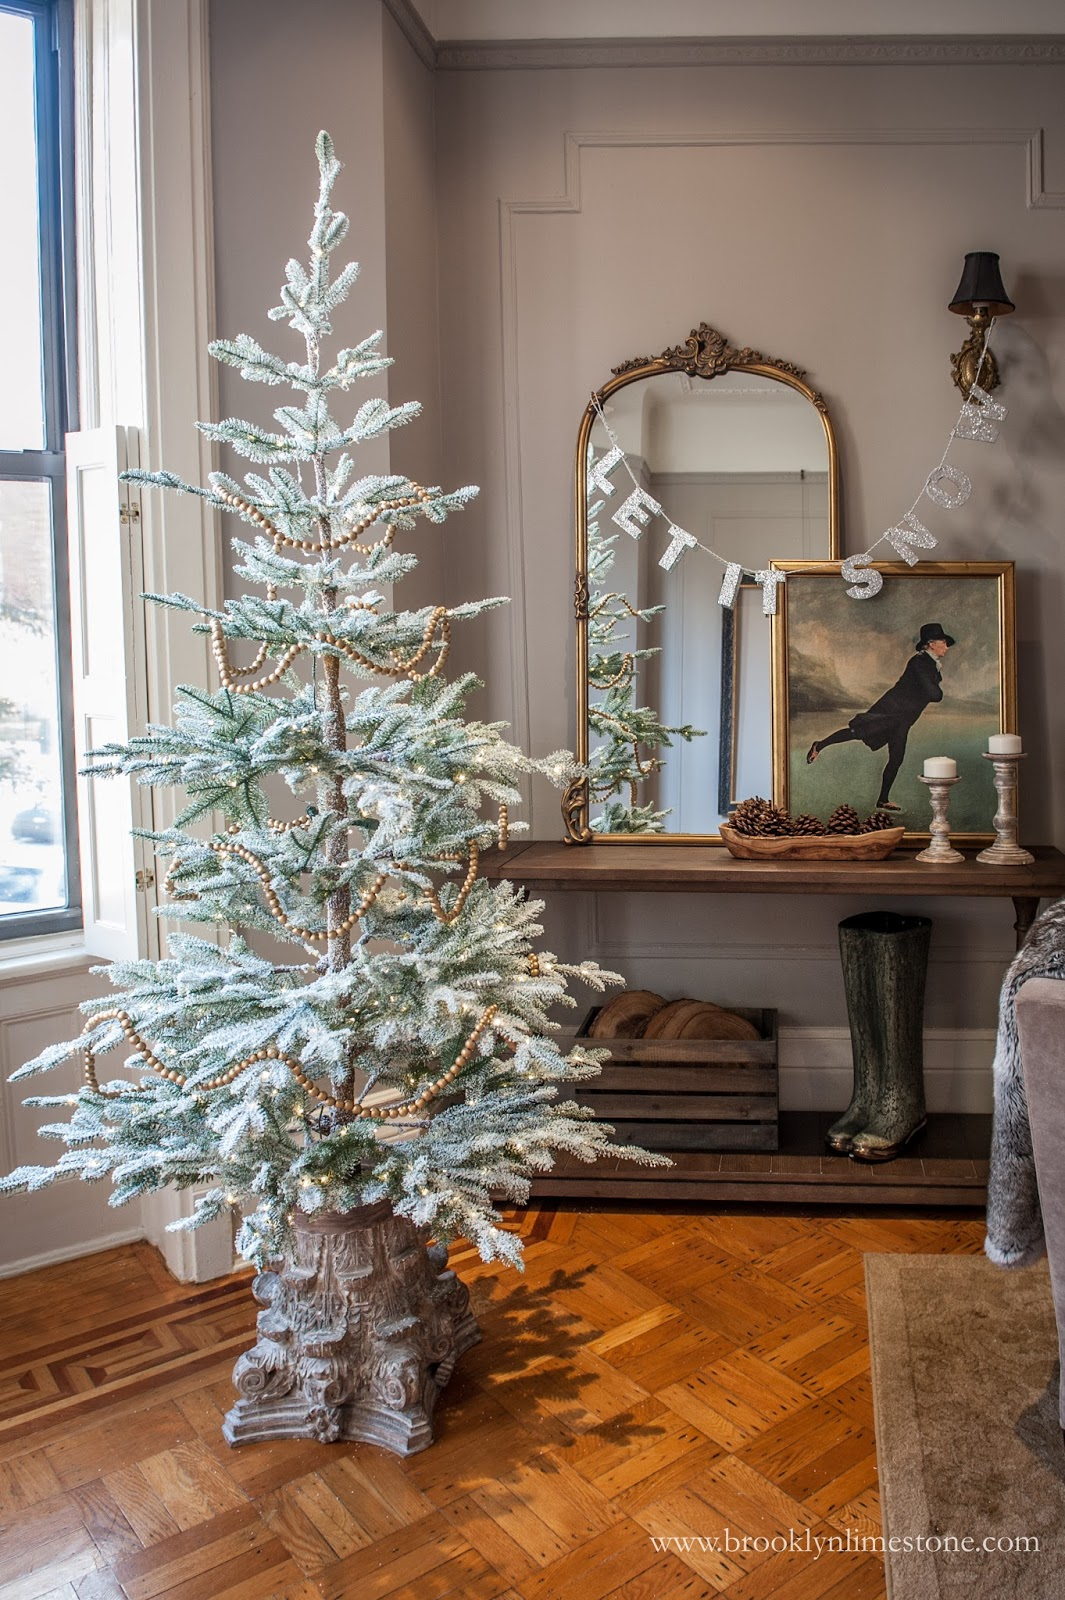 15 Sparse Christmas Trees - love this beautiful tree minimally decorated with wood bead garland kellyelko.com #christmas #christmastree #sparsechristmastree #vintagechristmas #christmasdecor #christmasedecorating #christmasdecoratingideas #farmhousechristmas #christmasornaments #neutralchristmas #silvertip #kellyelko